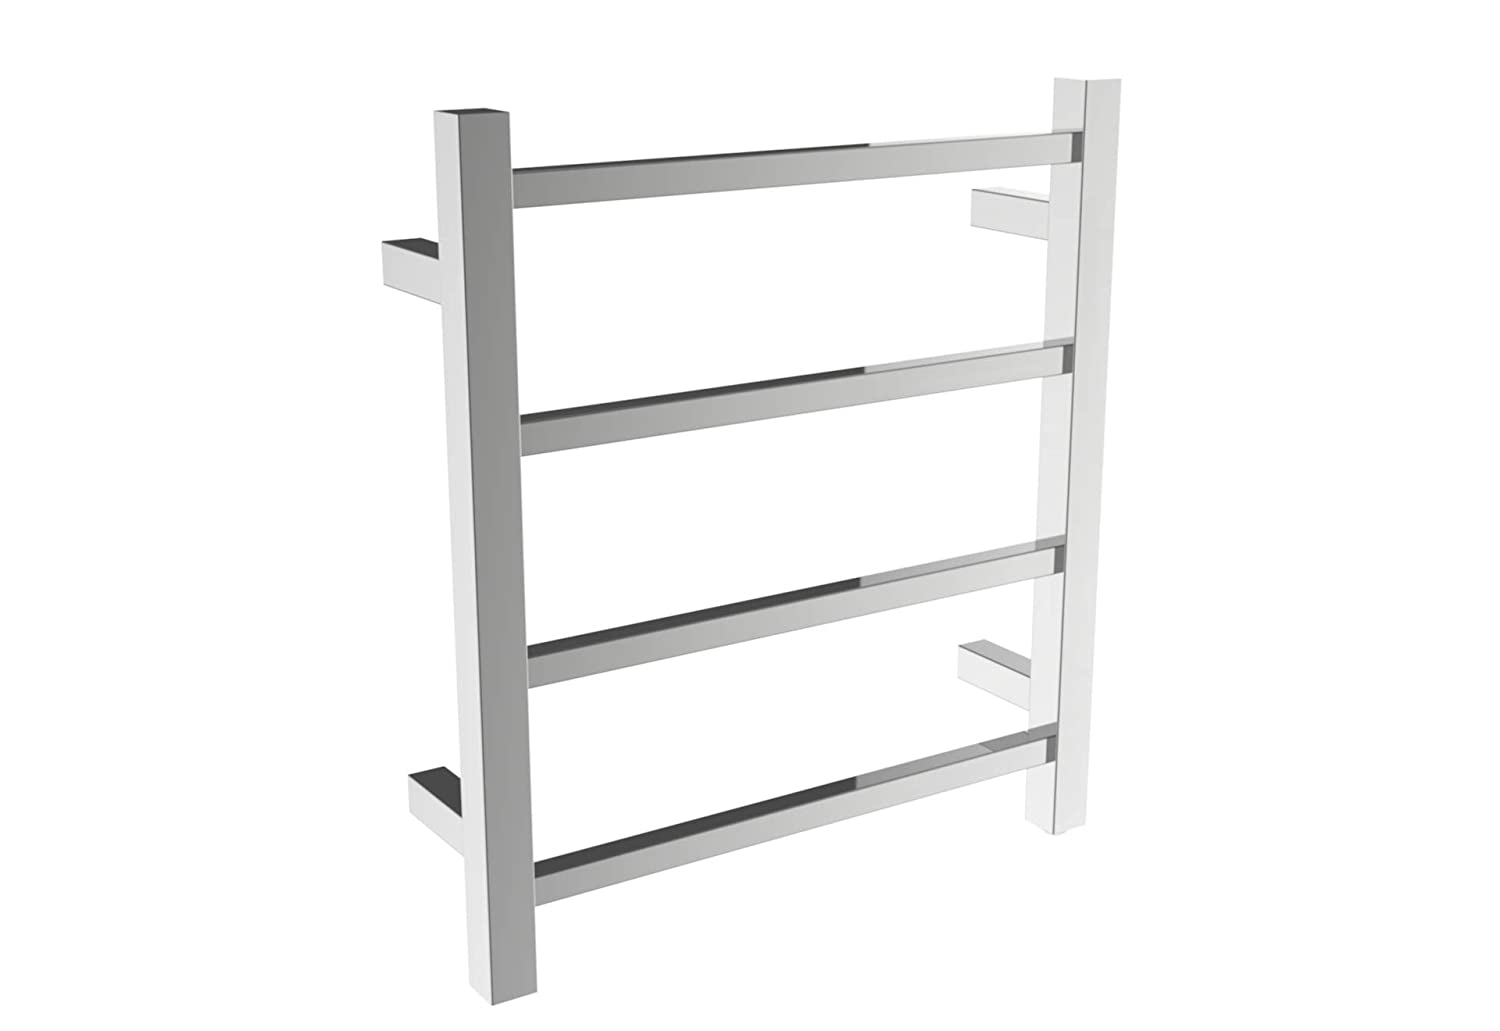 SHARNDY Towel Warmers Heated Towel Rail Square Bars ETW13-2A Towel Warmer for Bathroom Polish Chrome Ltd